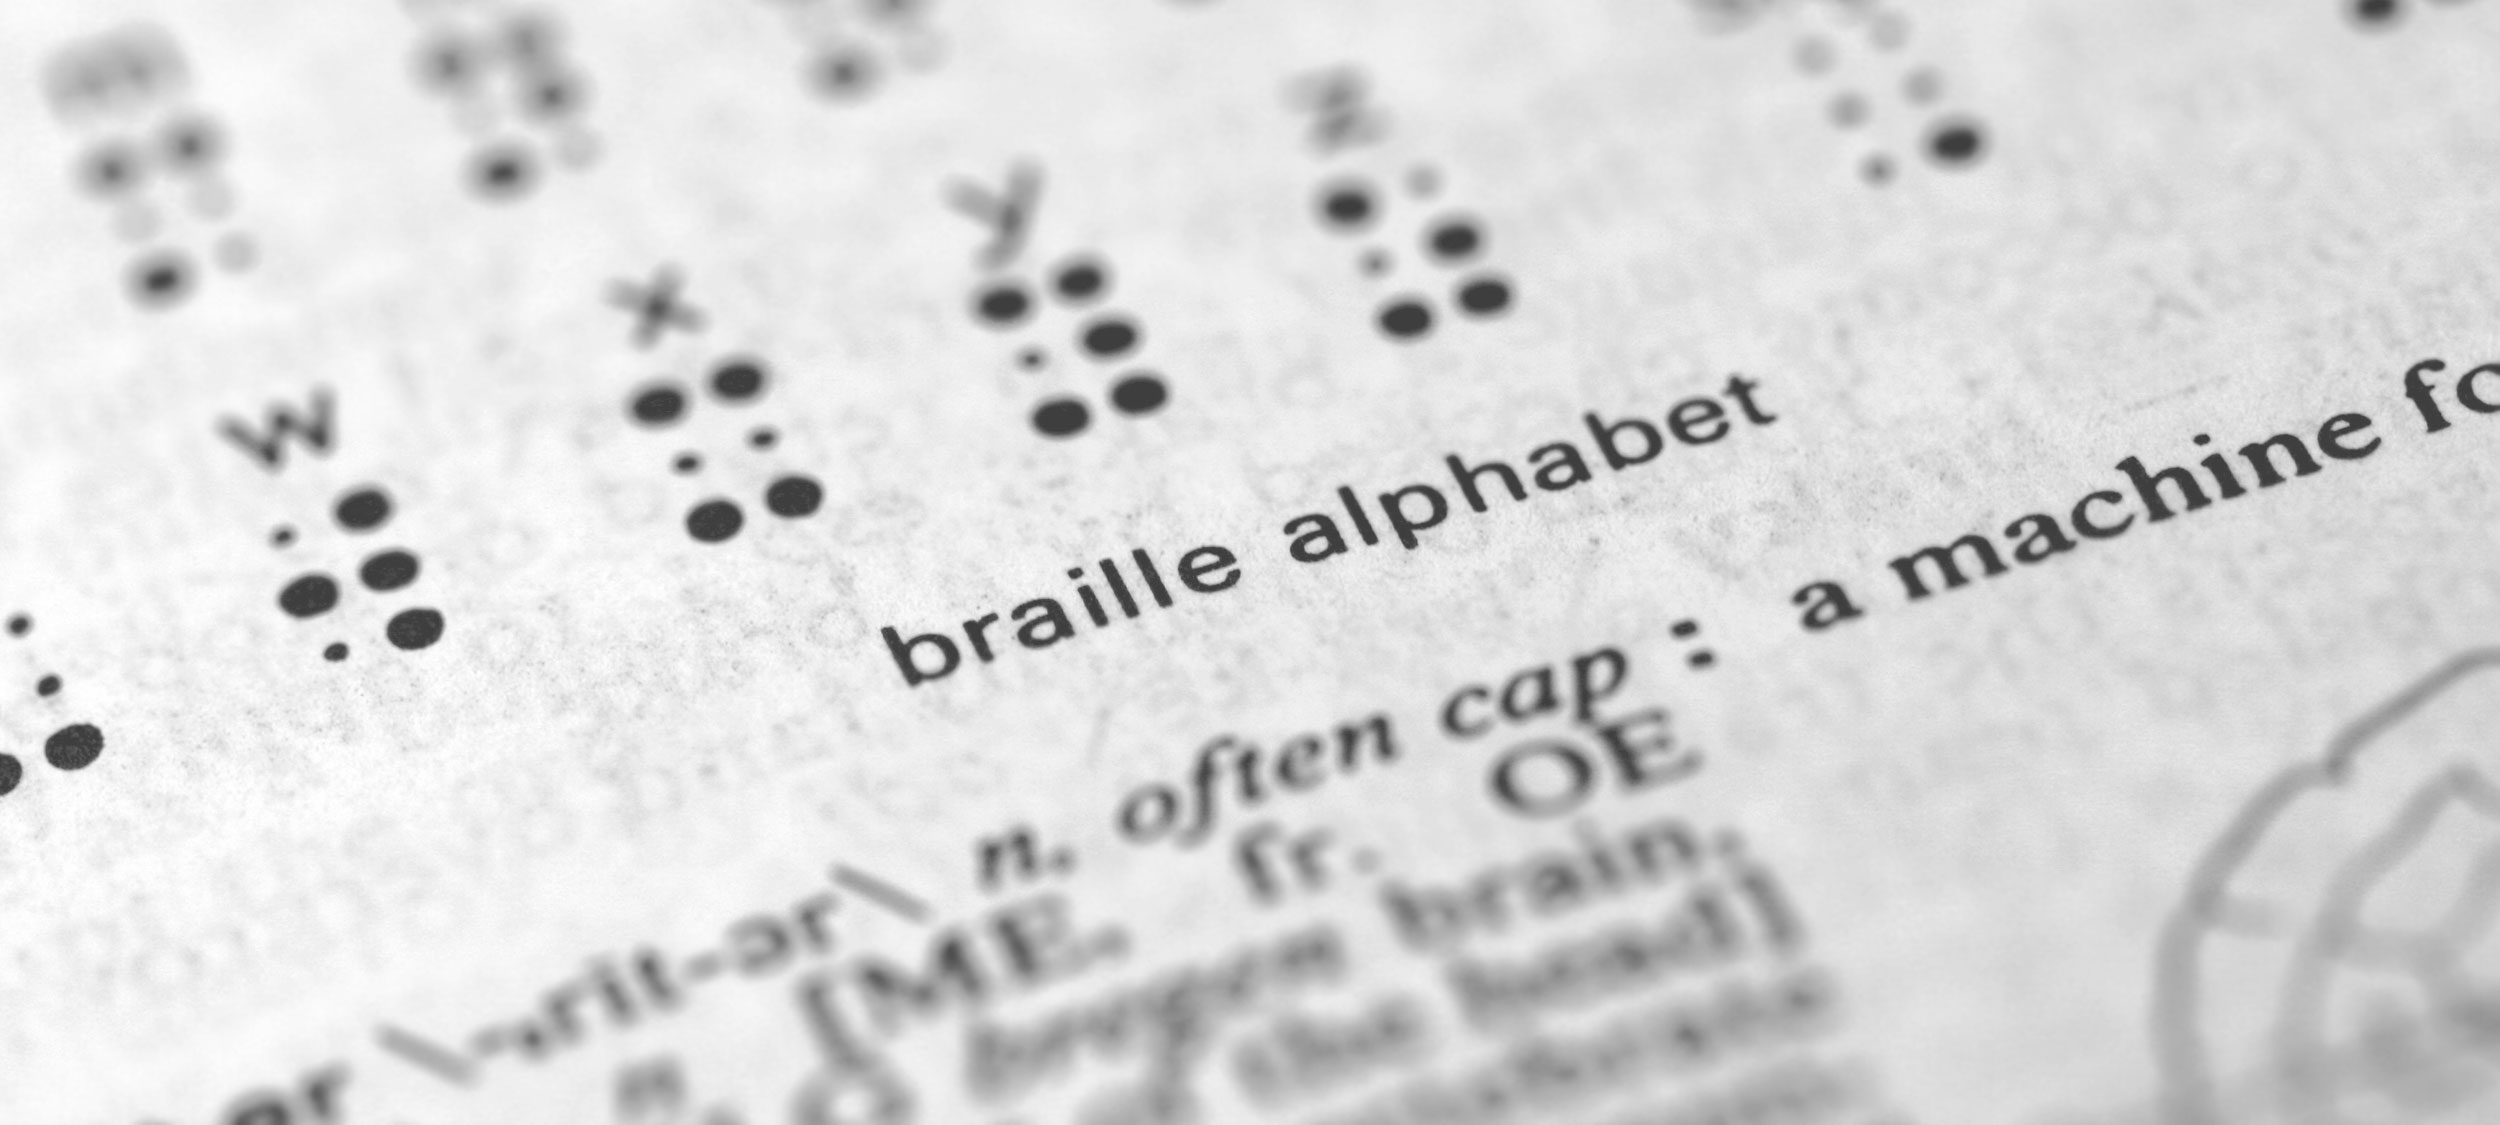 Contact Michigan Braille Transcribing Fund